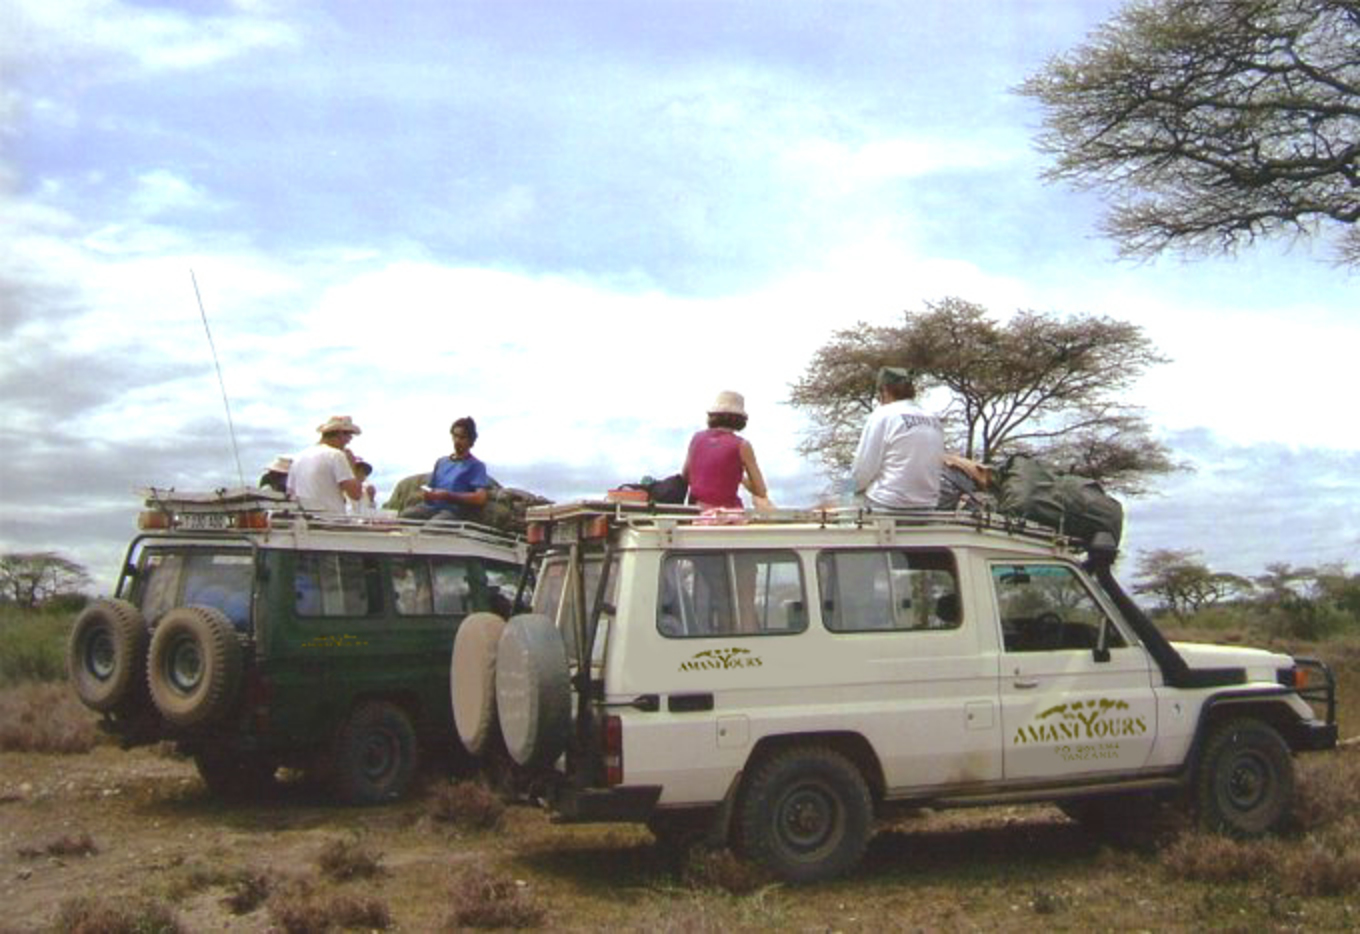 Our Safari Vehicles | Toyota Land Cruiser Safari Vehicle